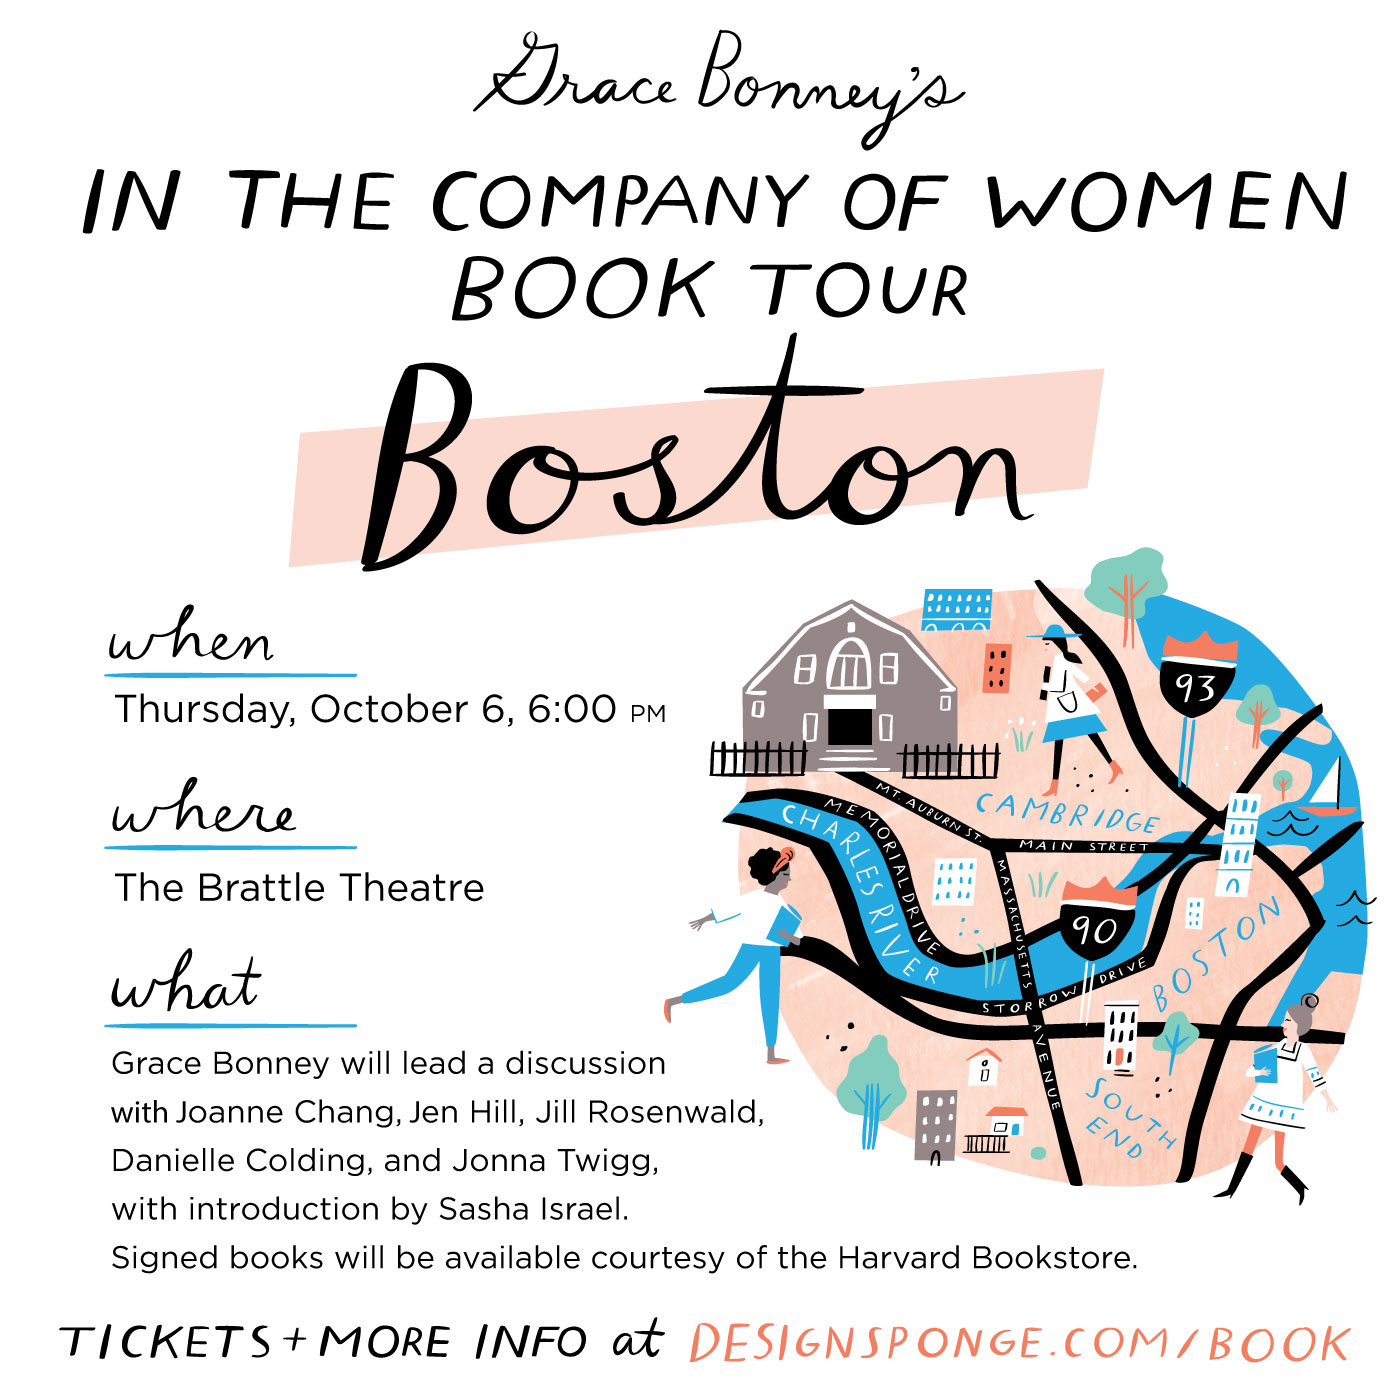 itcow_booktour_promos_cities_boston